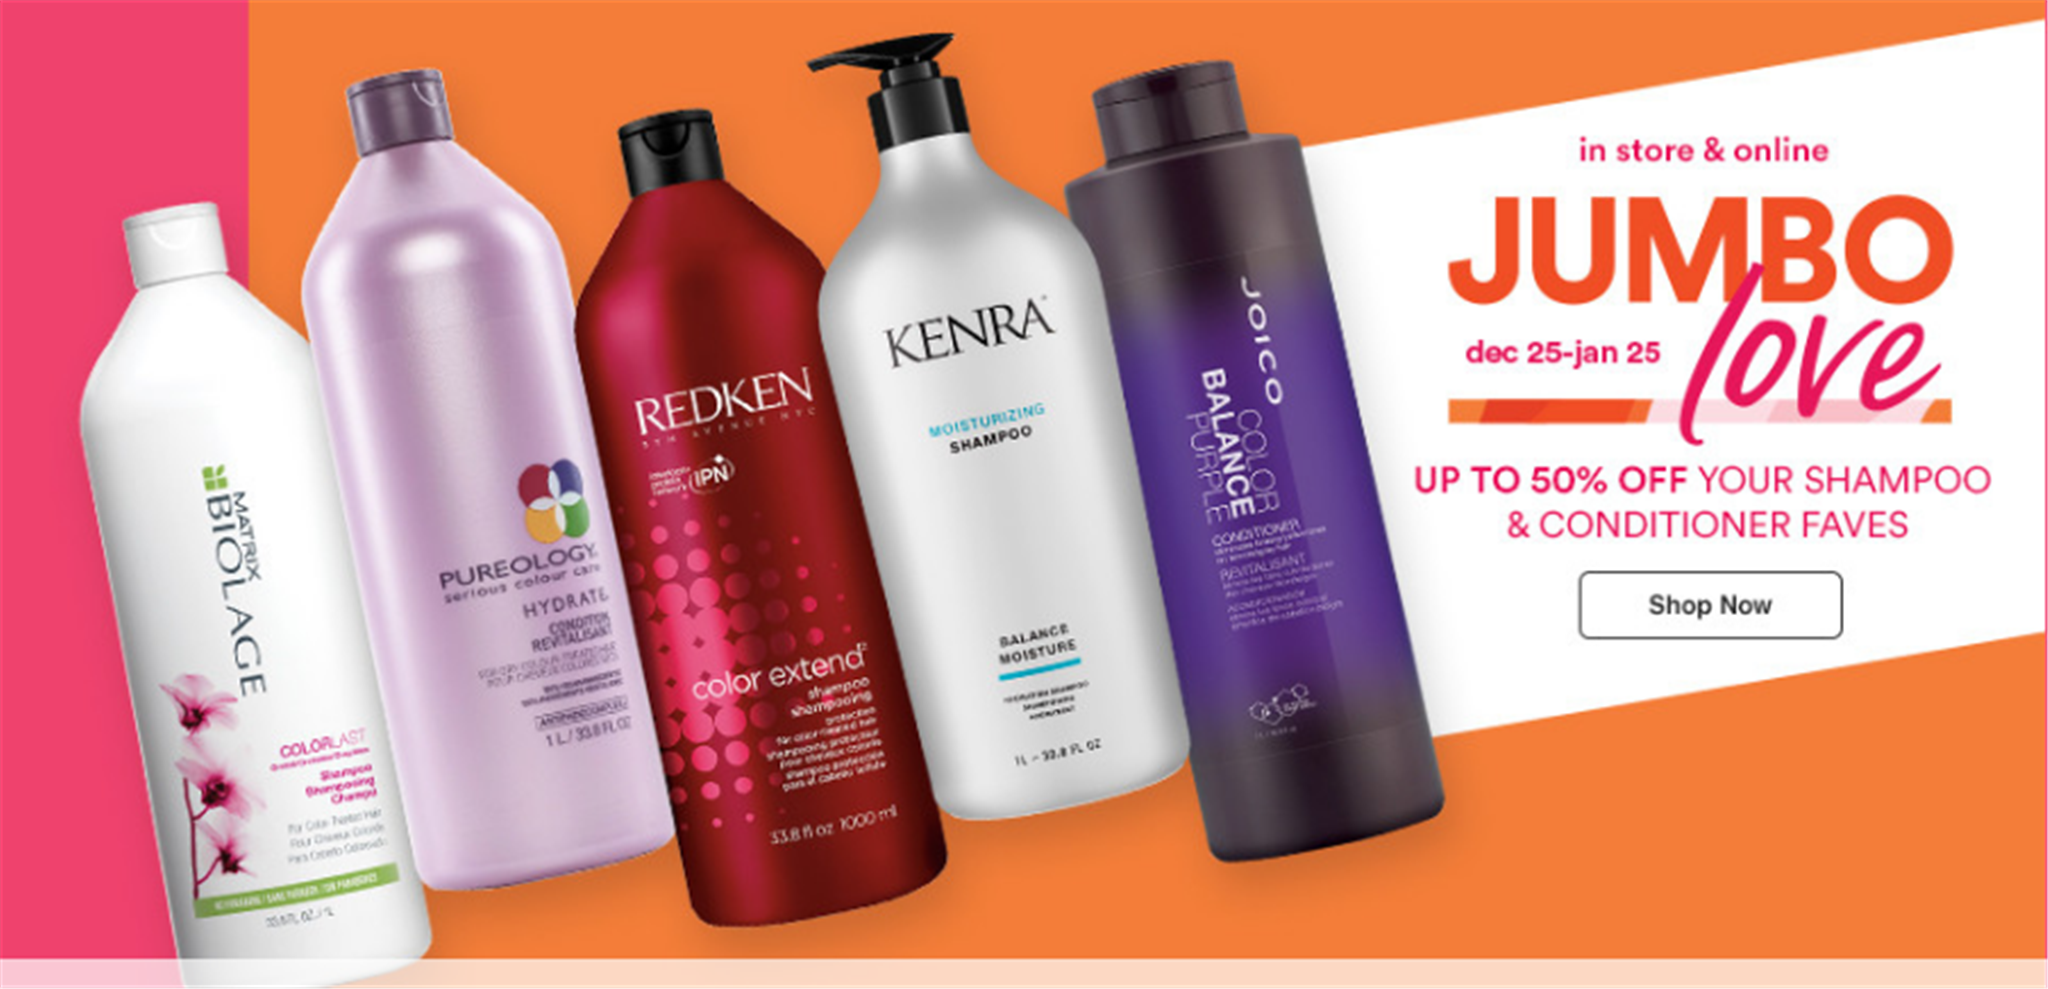 Ulta Beauty – Up To 50% Off Jumbo Hair Care + $3 Off $15 with Code! Paul Mitchell, Matrix and More!